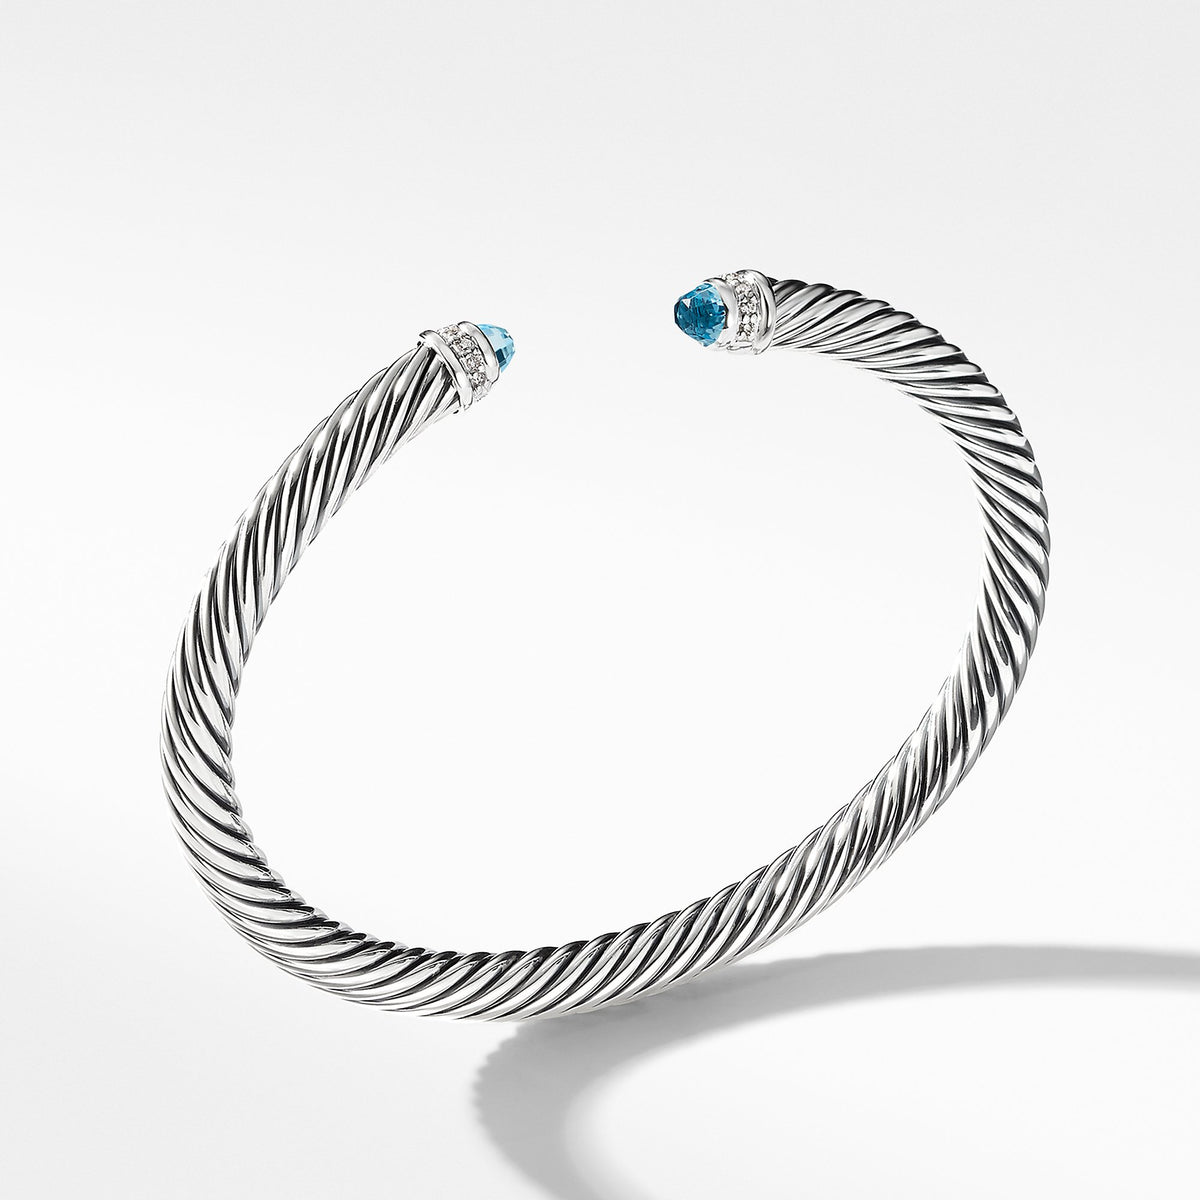 Cable Classics Collection Bracelet with Blue Topaz and Diamonds